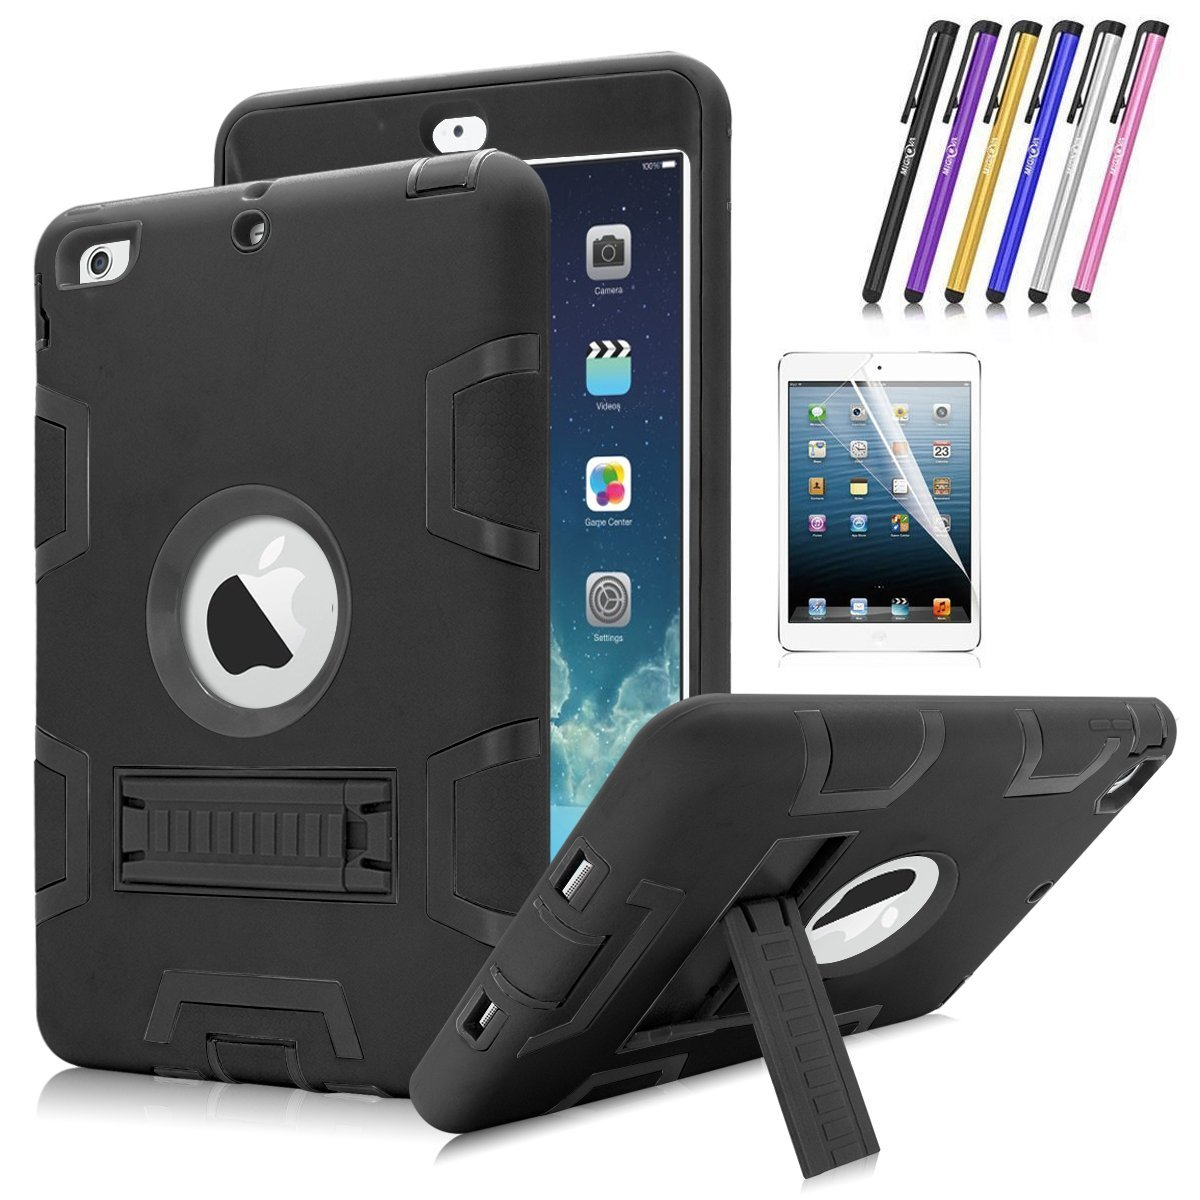 iPad Mini 1 / 2 / 3 Case, Mignova Heavy Duty rugged impact Hybrid Protective Case with Build In Kickstand For Apple iPad Mini 1 / 2 / 3 + Screen Protector Film and Stylus Pen (Black / Black)